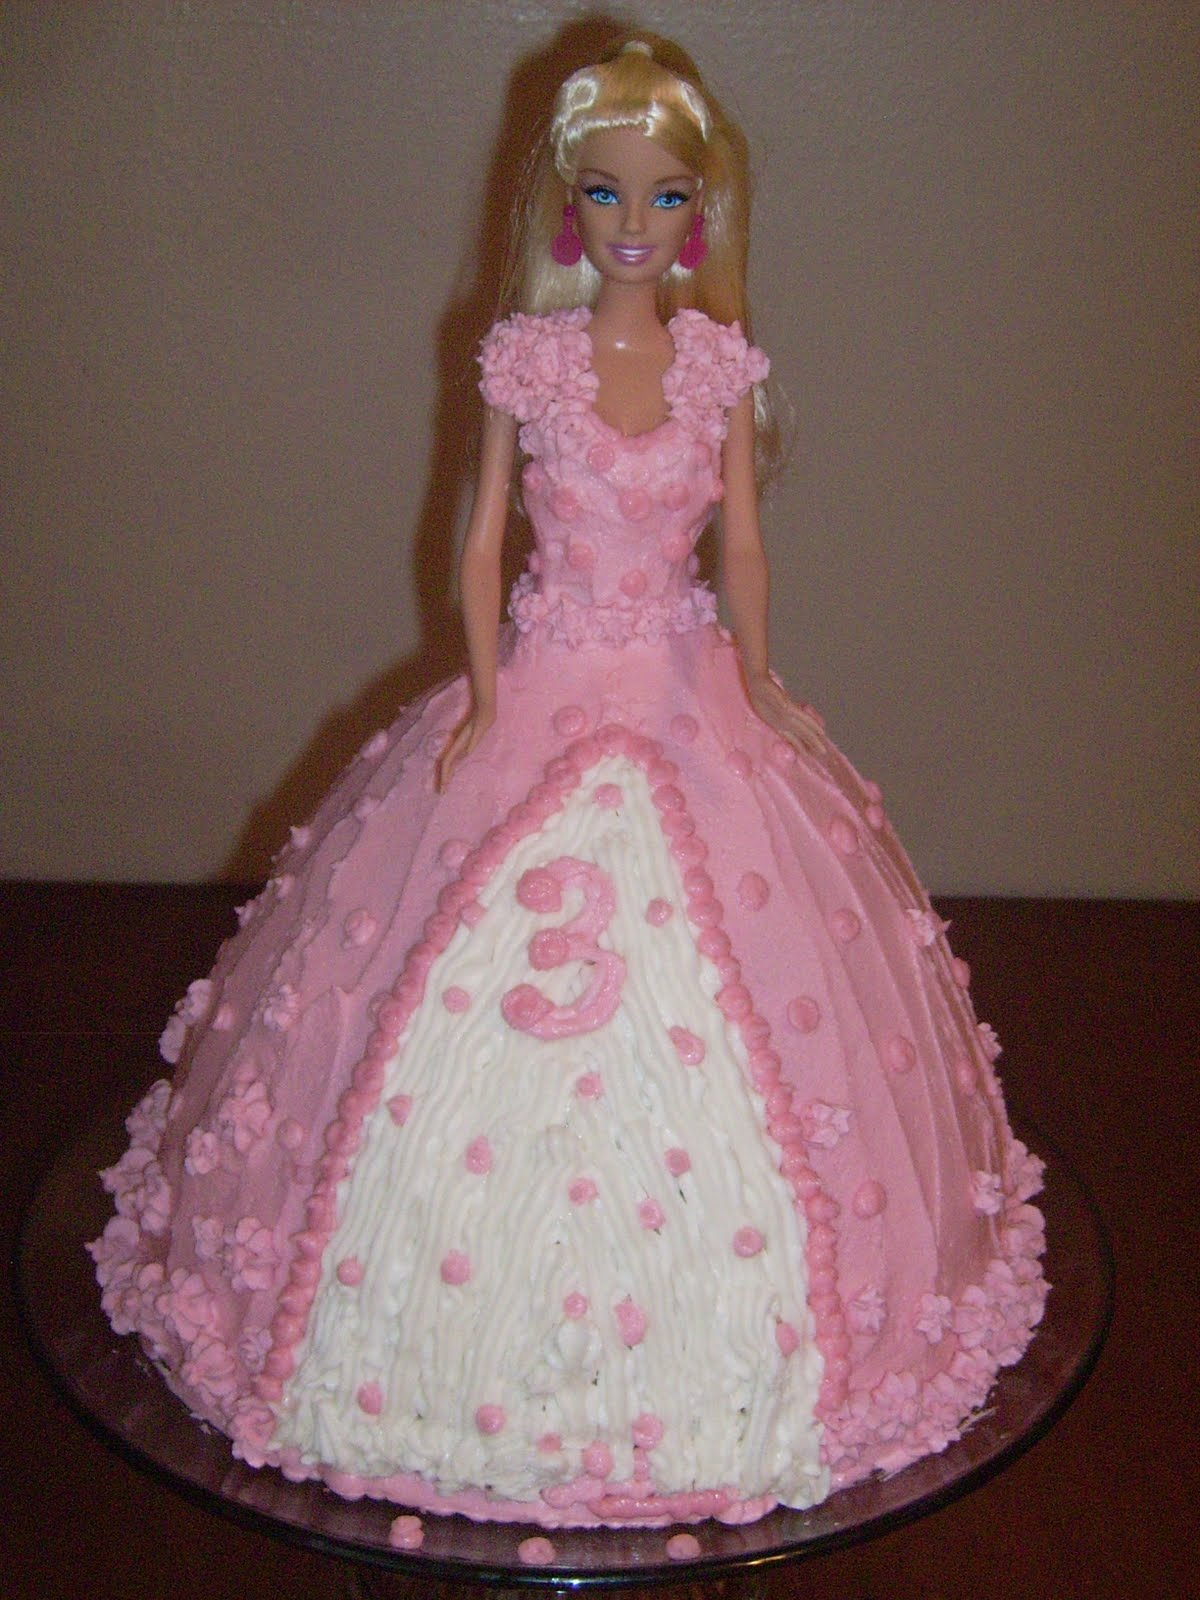 Baby Barbie Cake Shop Brithday Cake